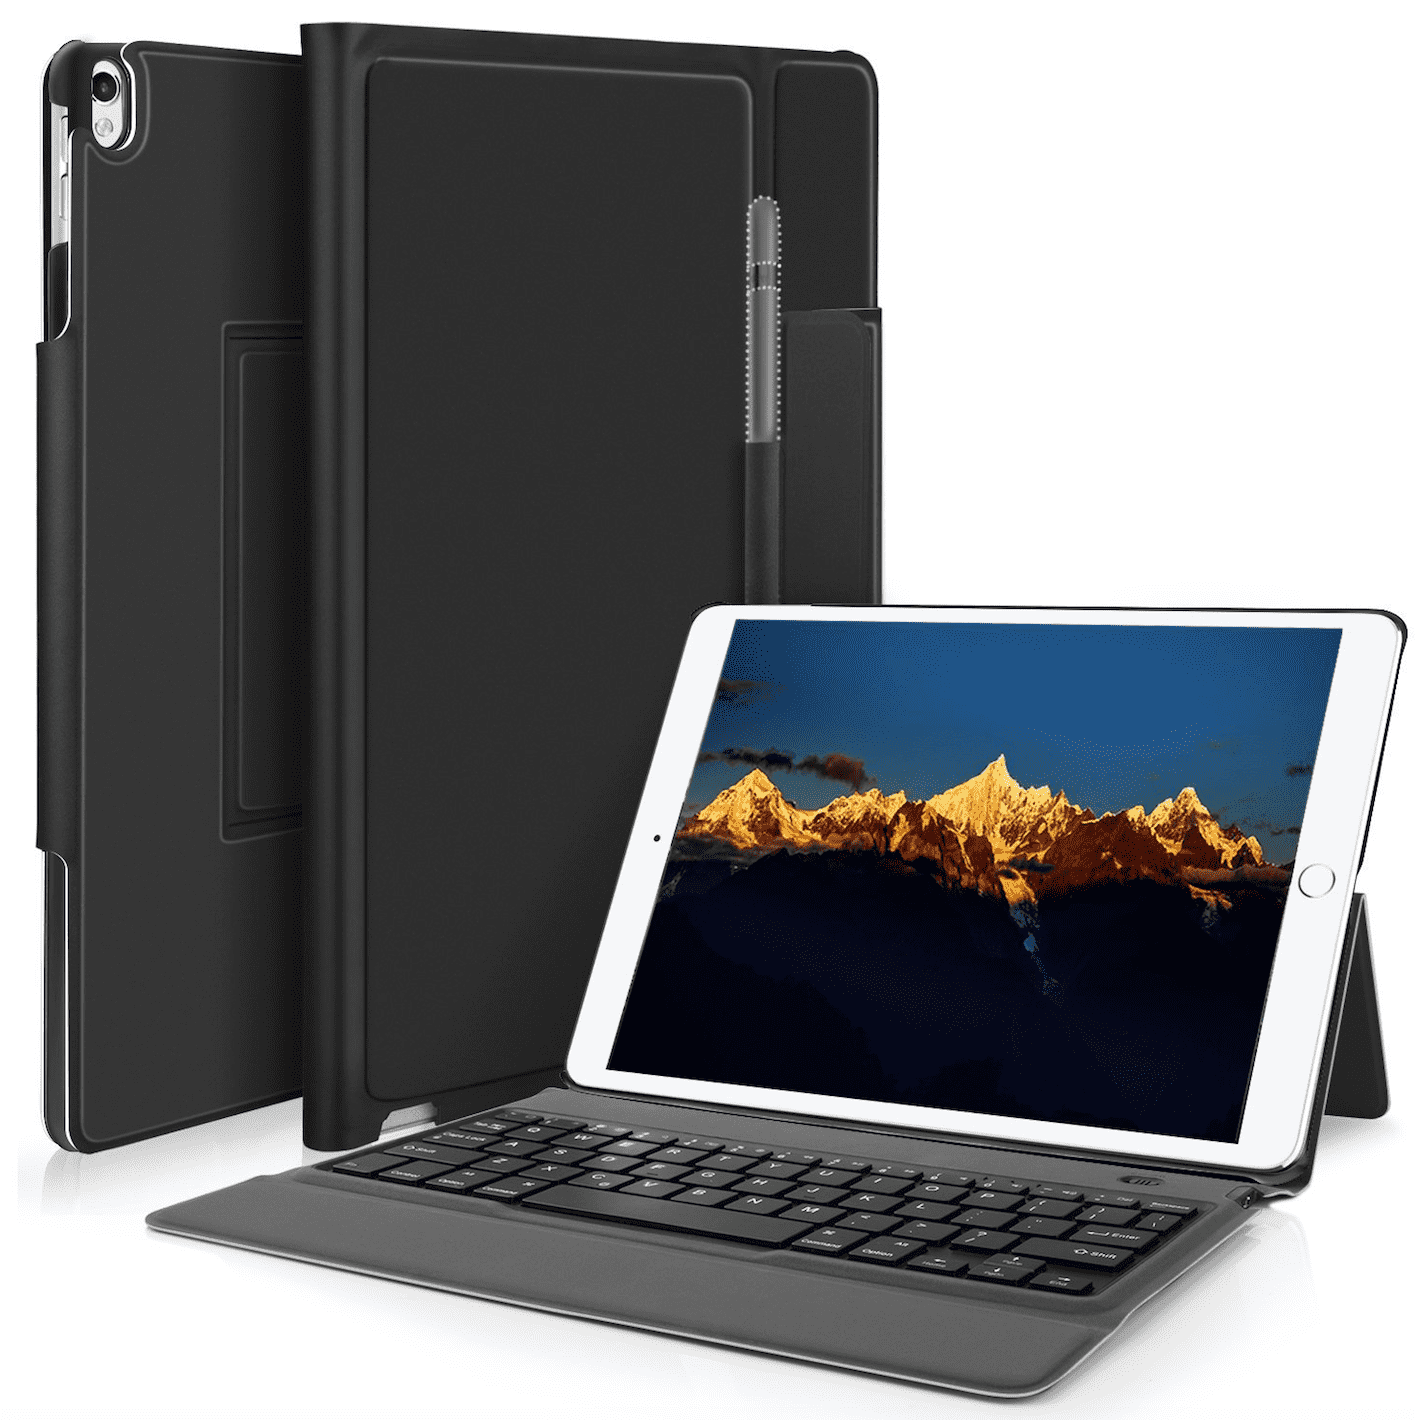 KuGi Keyboard : Best budget keyboard for iPad Pro 10.5 2017 edition cover image